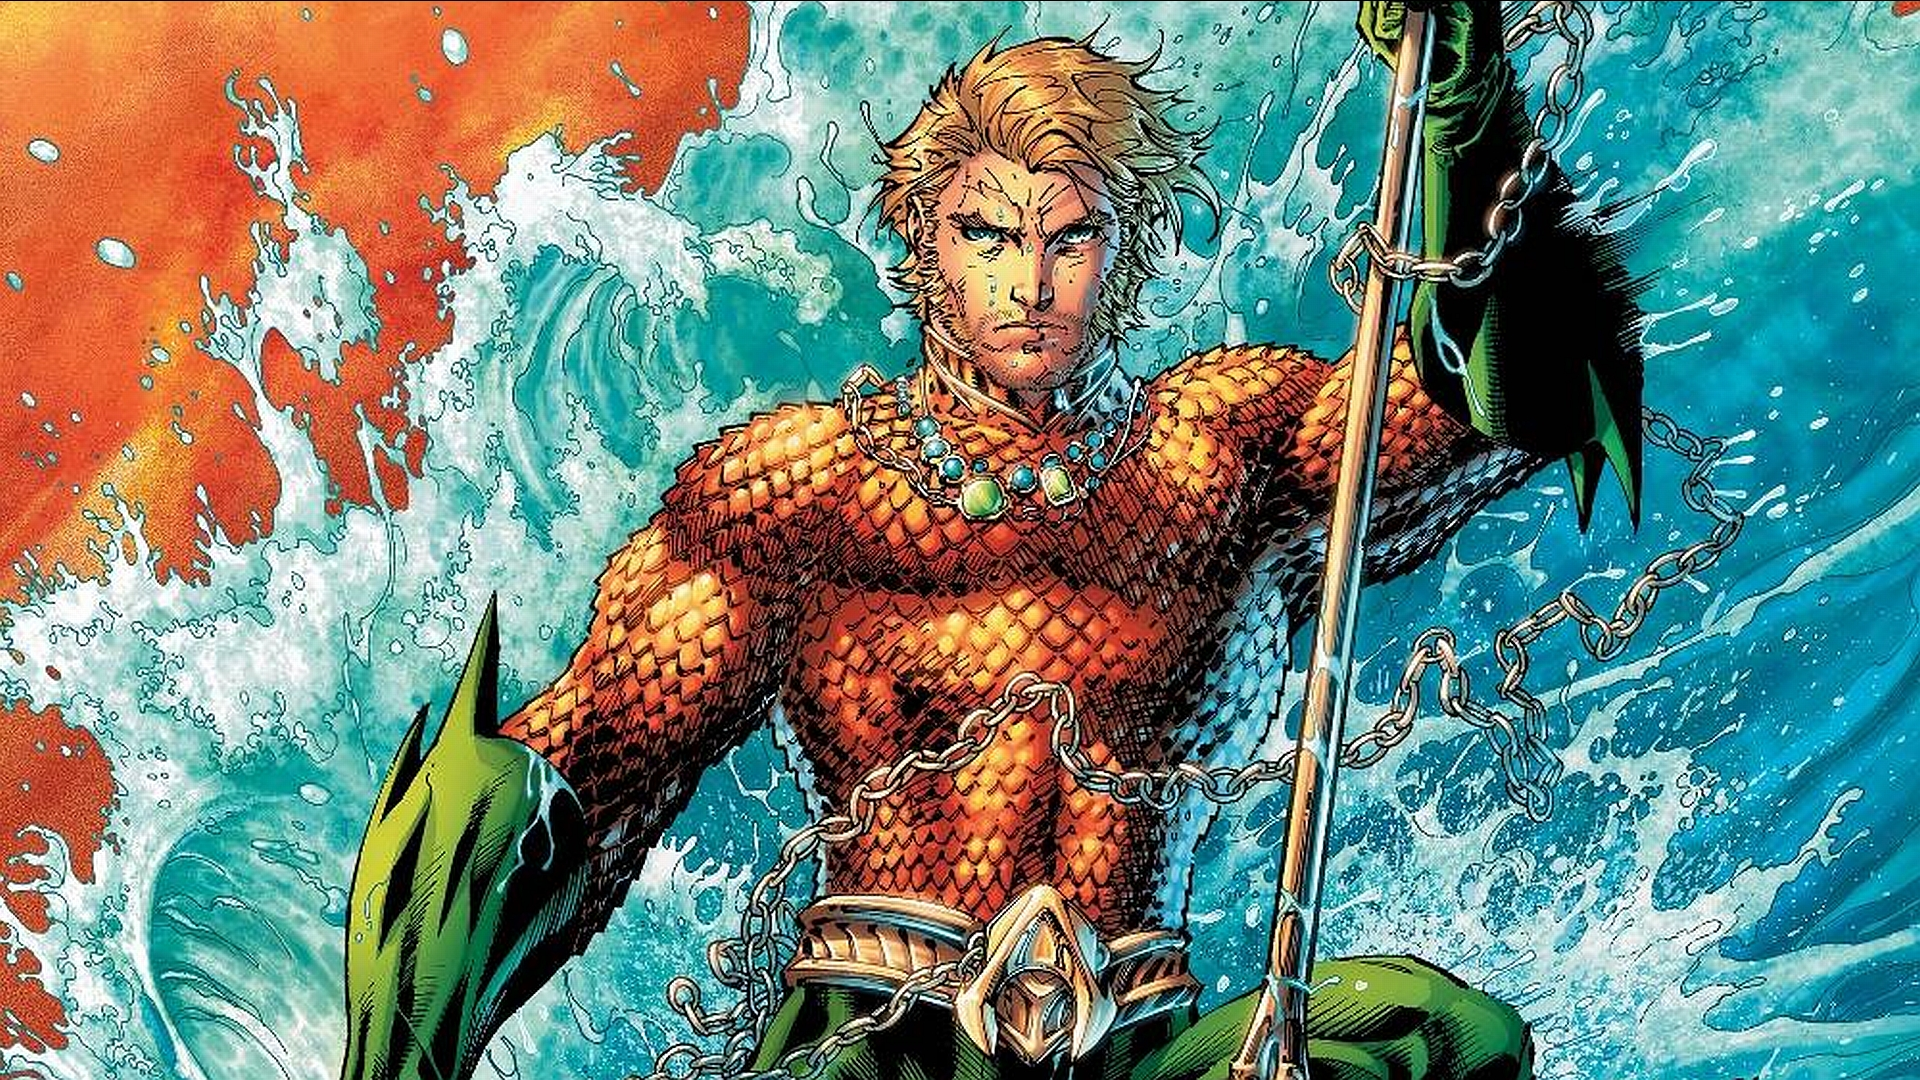 Aquaman Computer Wallpapers, Desktop Backgrounds 1280x1000 Id: 198137